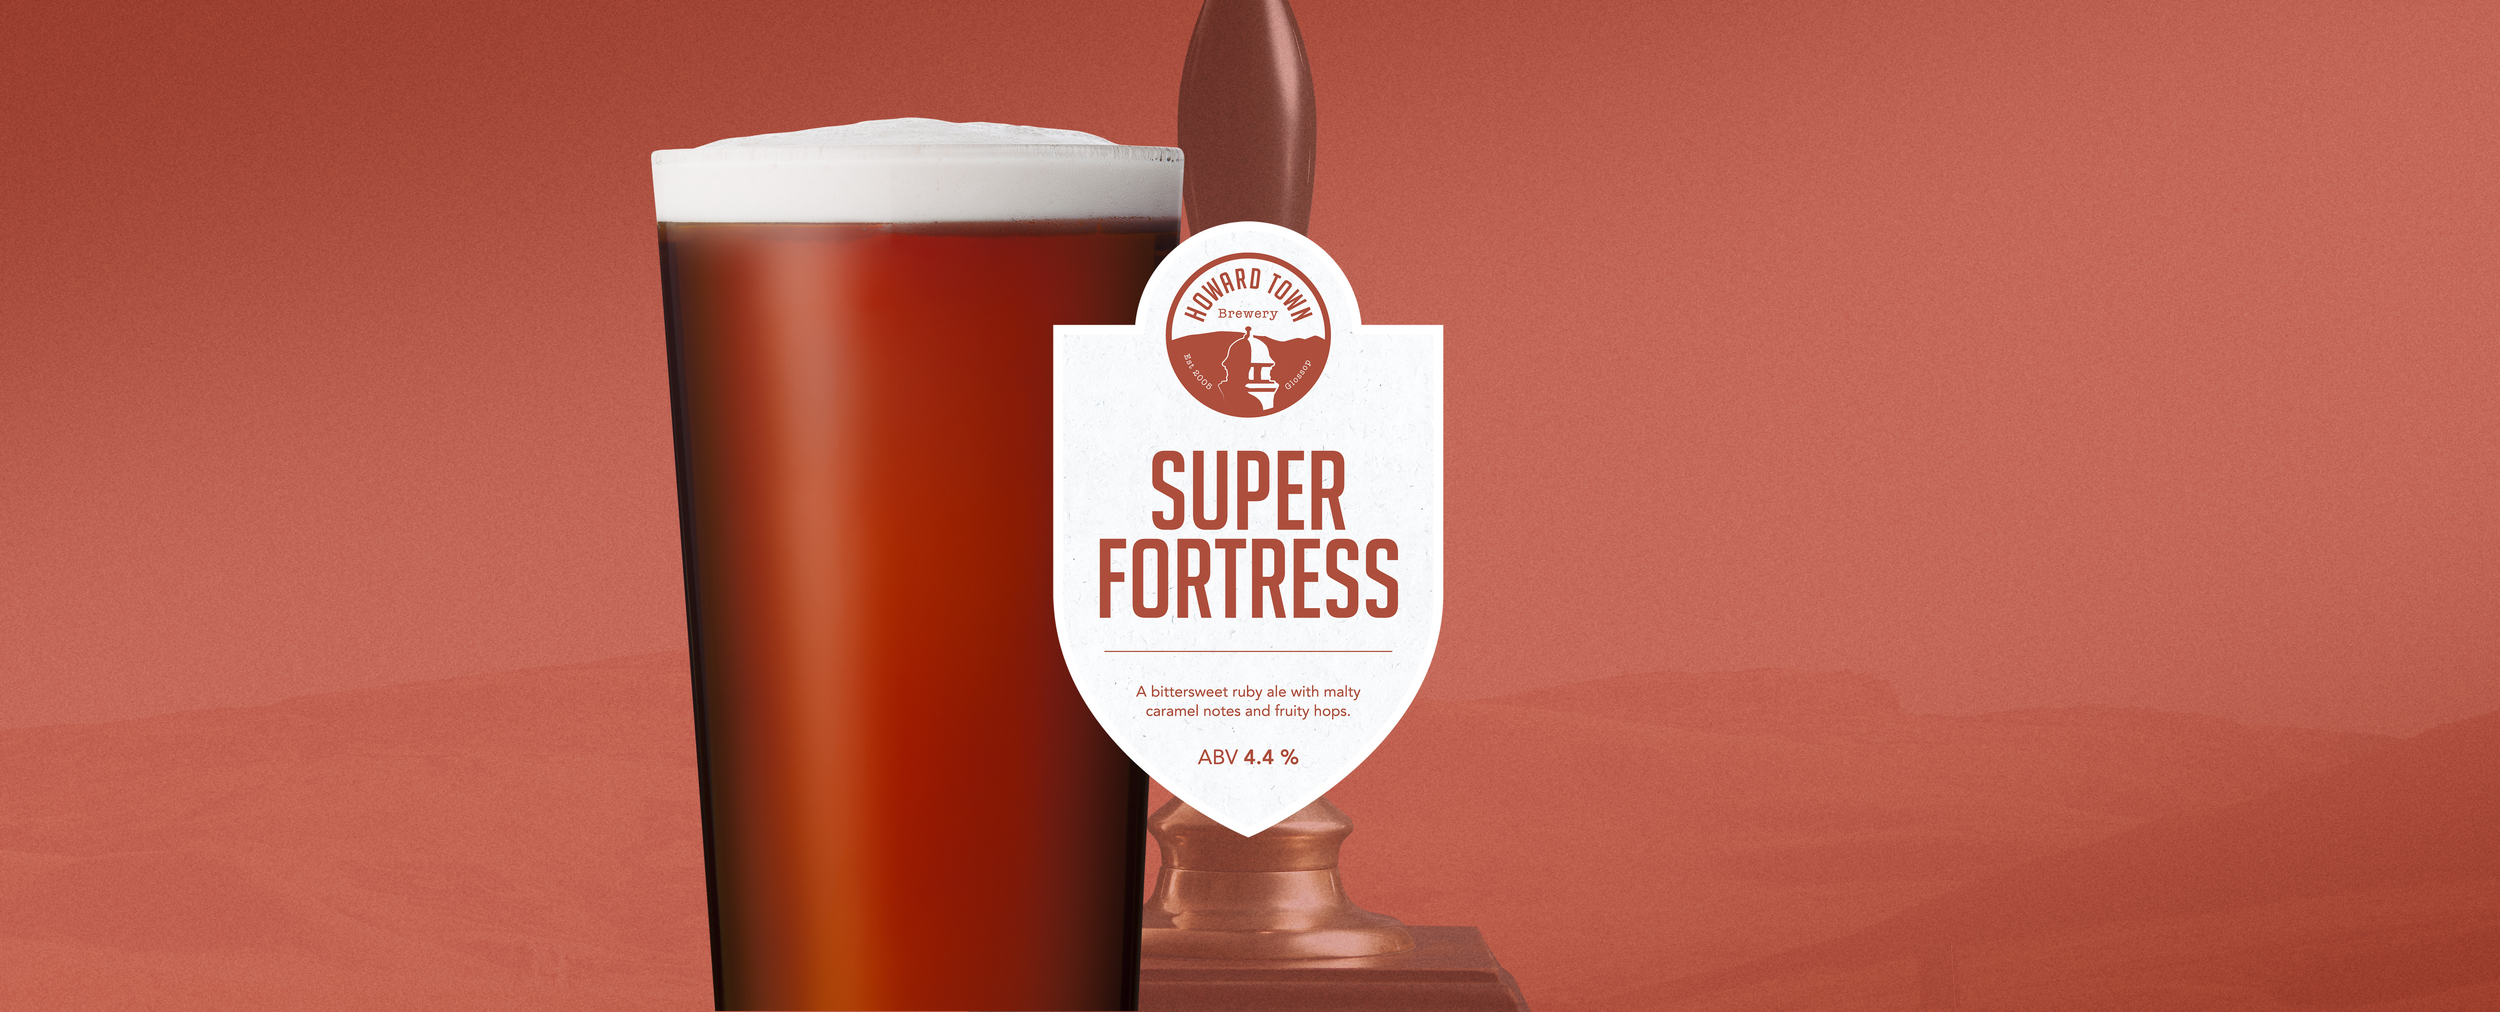 A bittersweet ruby ale with malty caramel notes and fruity hops. 4.4%ABV